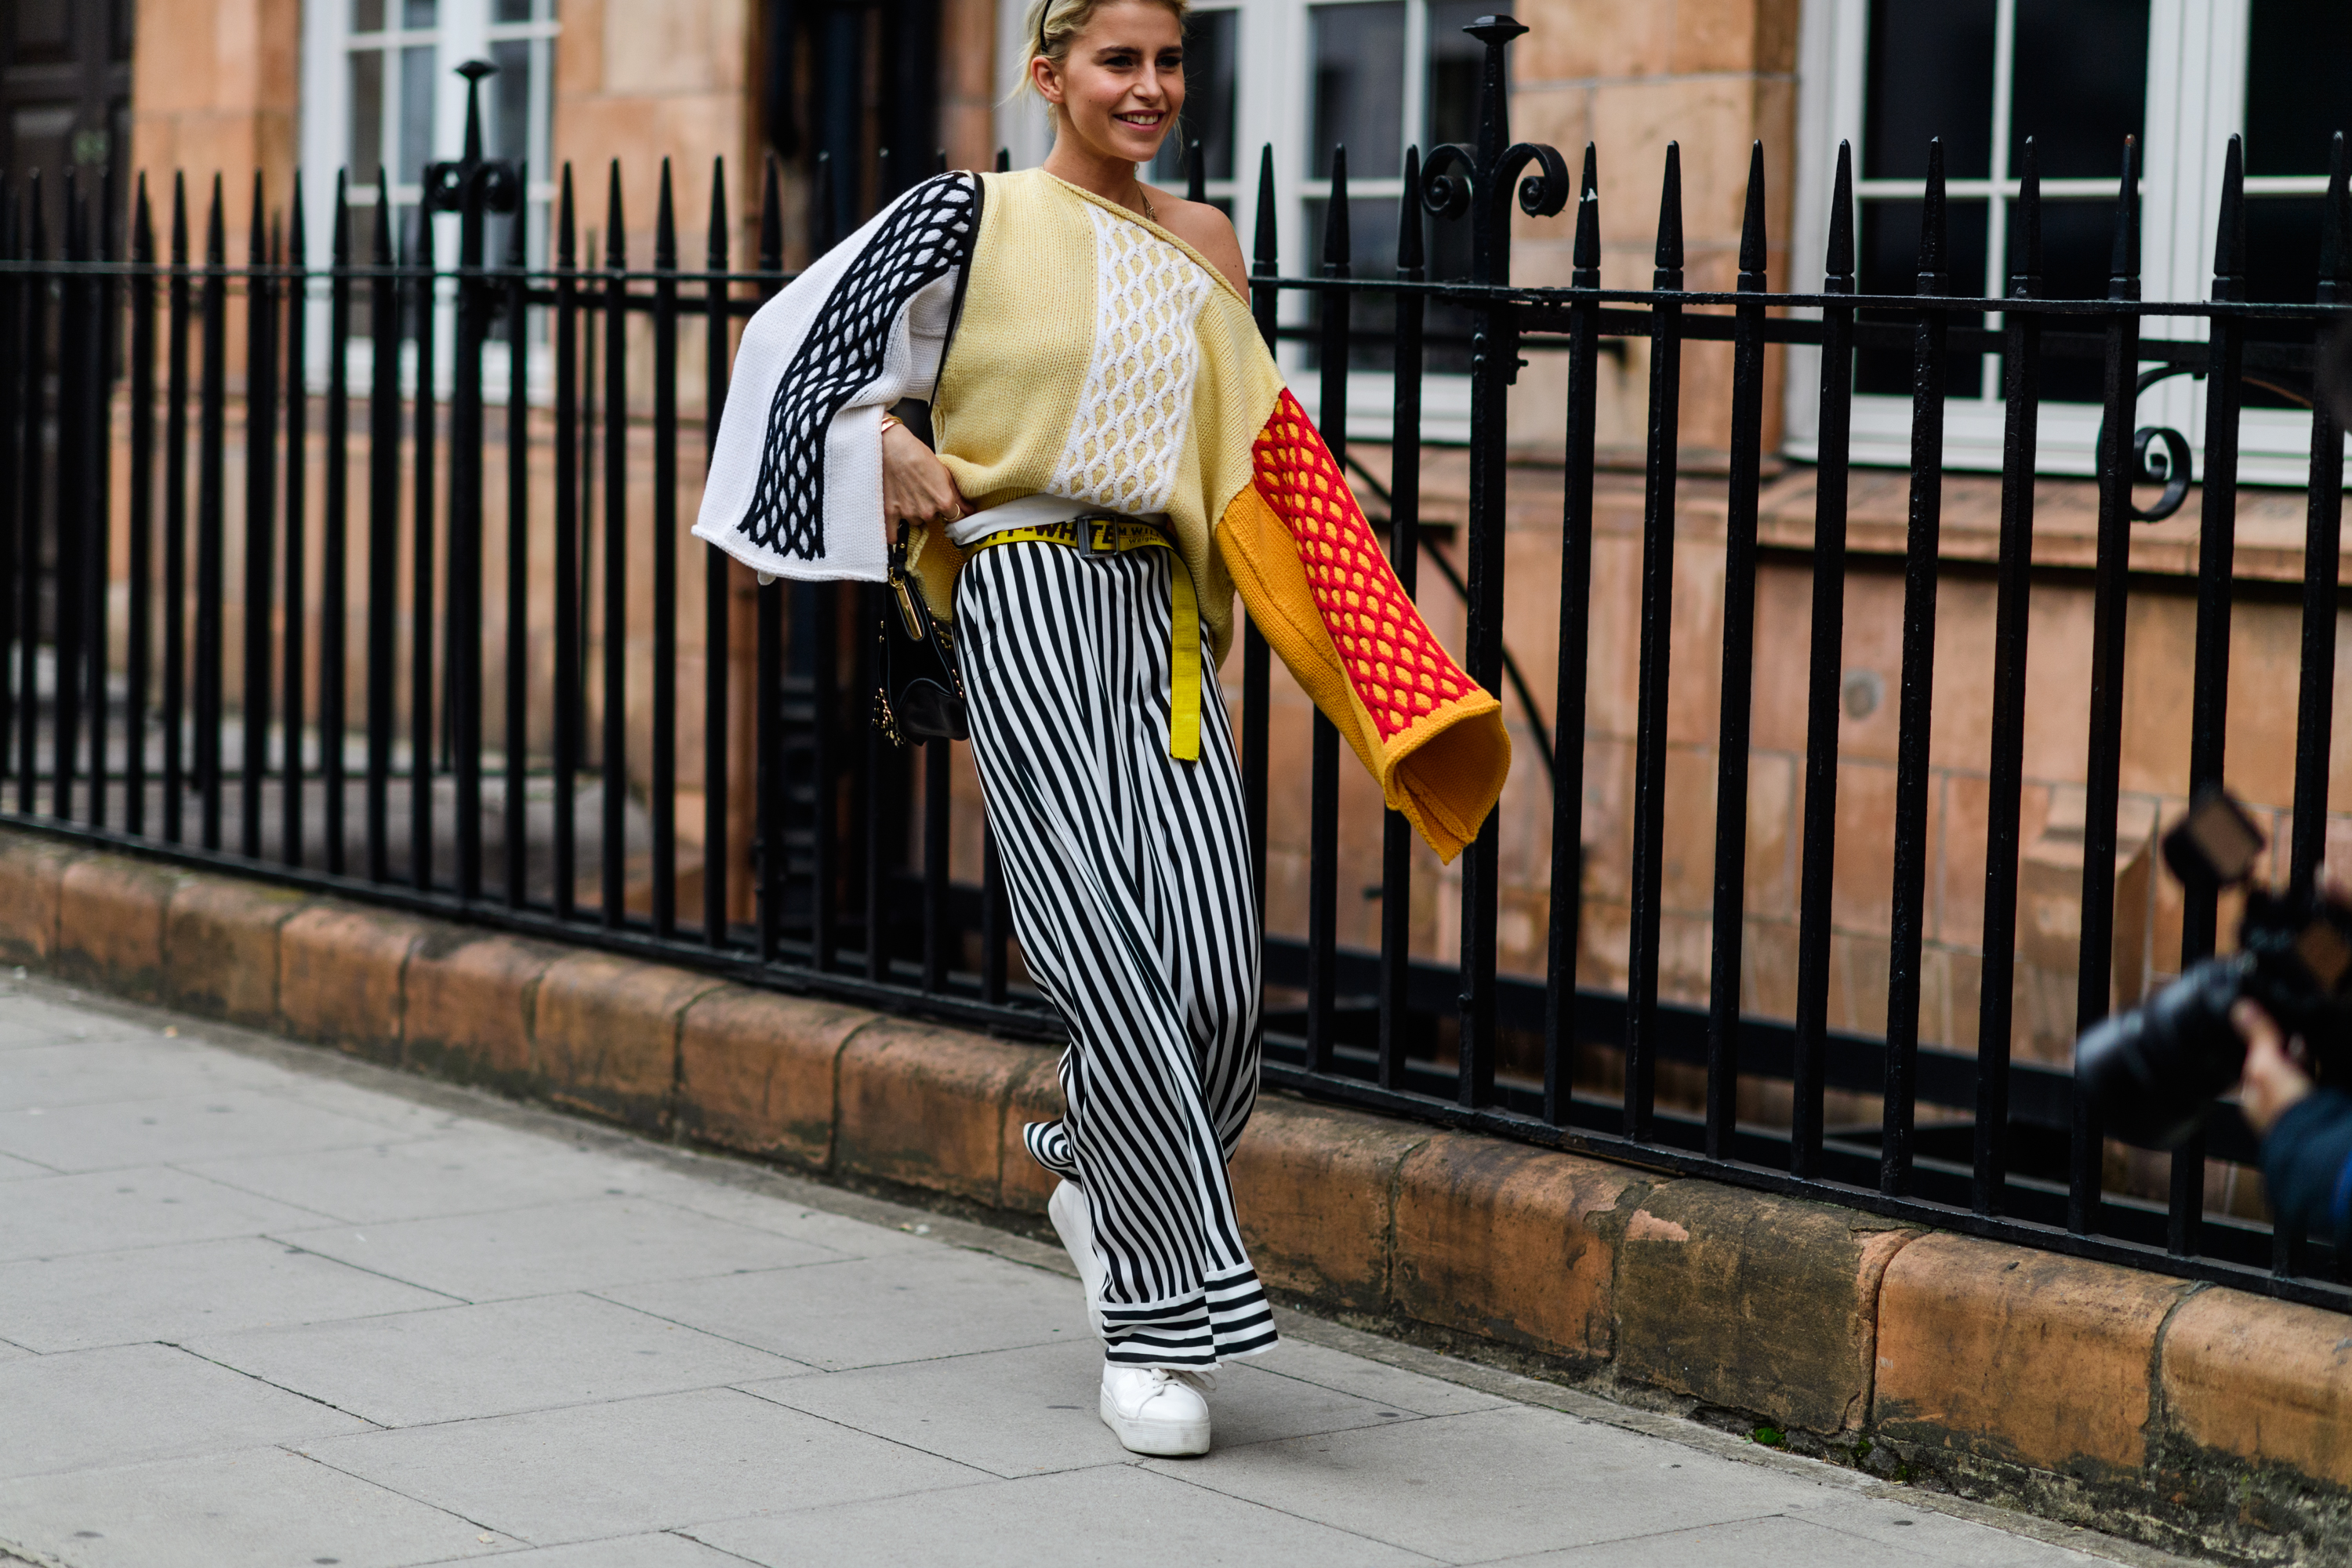 london-lfw-street-style-ss18-day-1-tyler-joe-033-1505753319